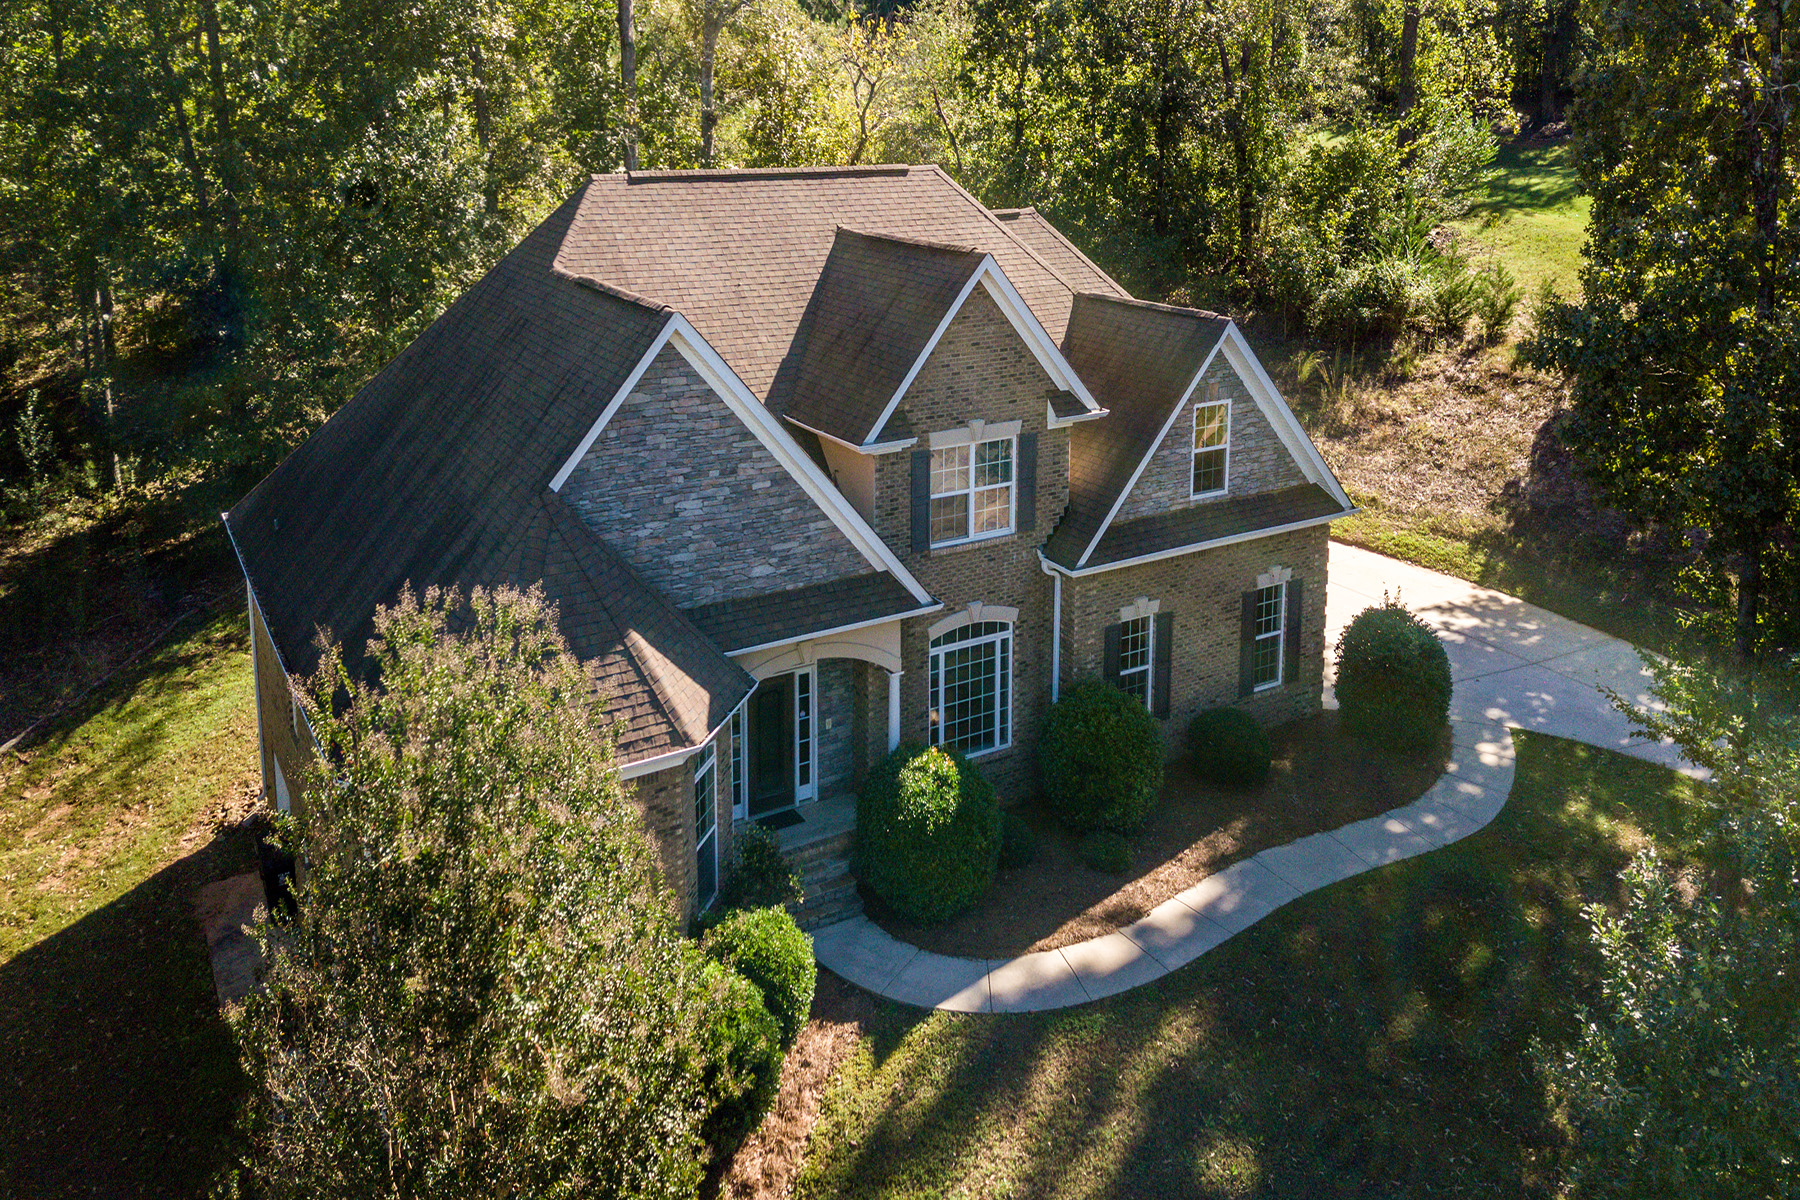 Single Family Home for Sale at An Exquisite Brick Two Story Plus Basement 509 Arrowhead Drive McDonough, Georgia 30252 United States